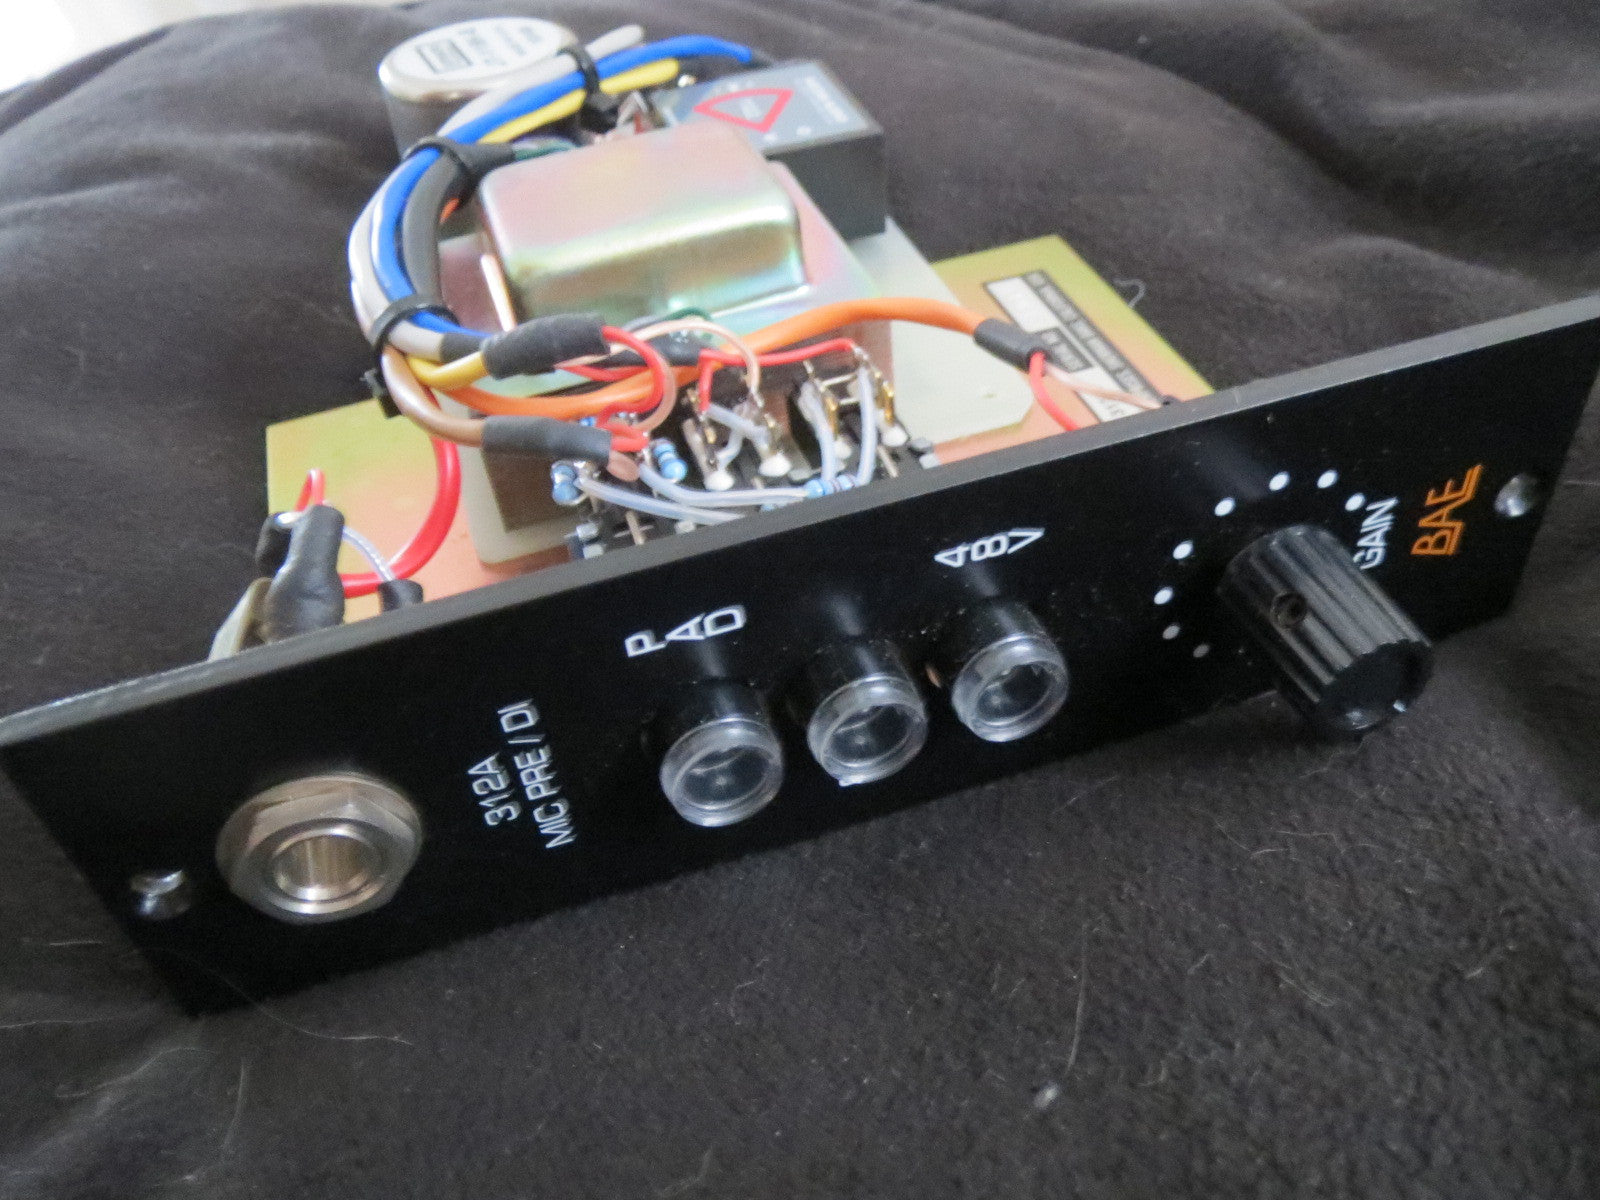 BAE 312A 500 SERIES MIC PRE-AMP MODULE W/O POWER SUPPLY